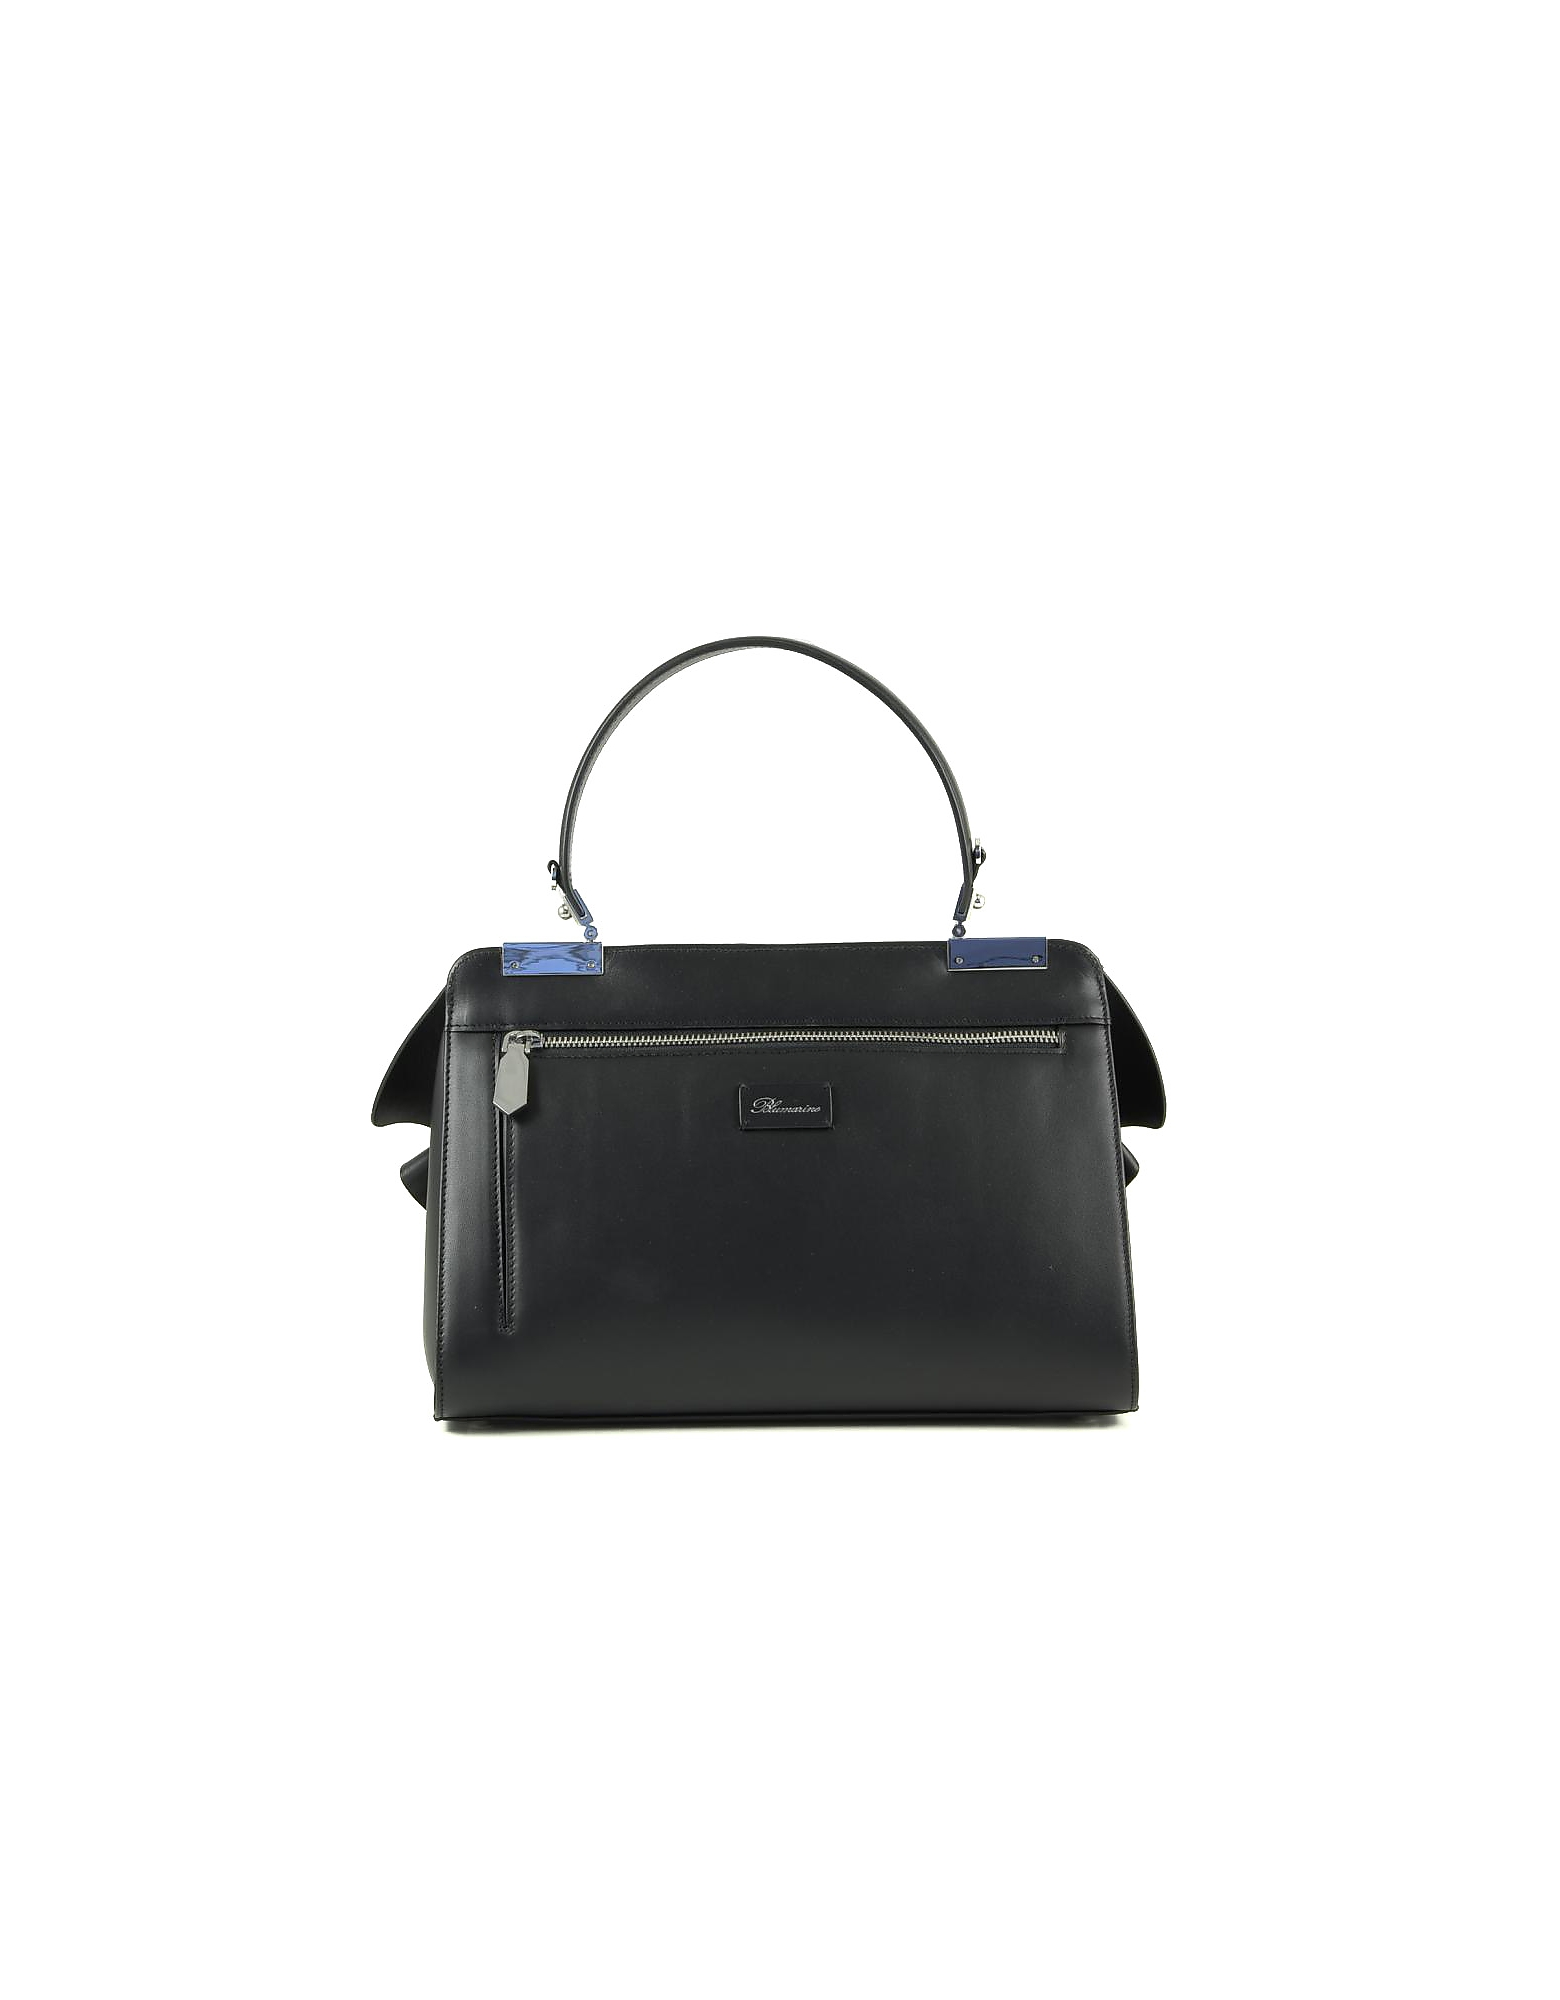 Blumarine Designer Handbags, Vivienne Black Leather Top Handle Bag